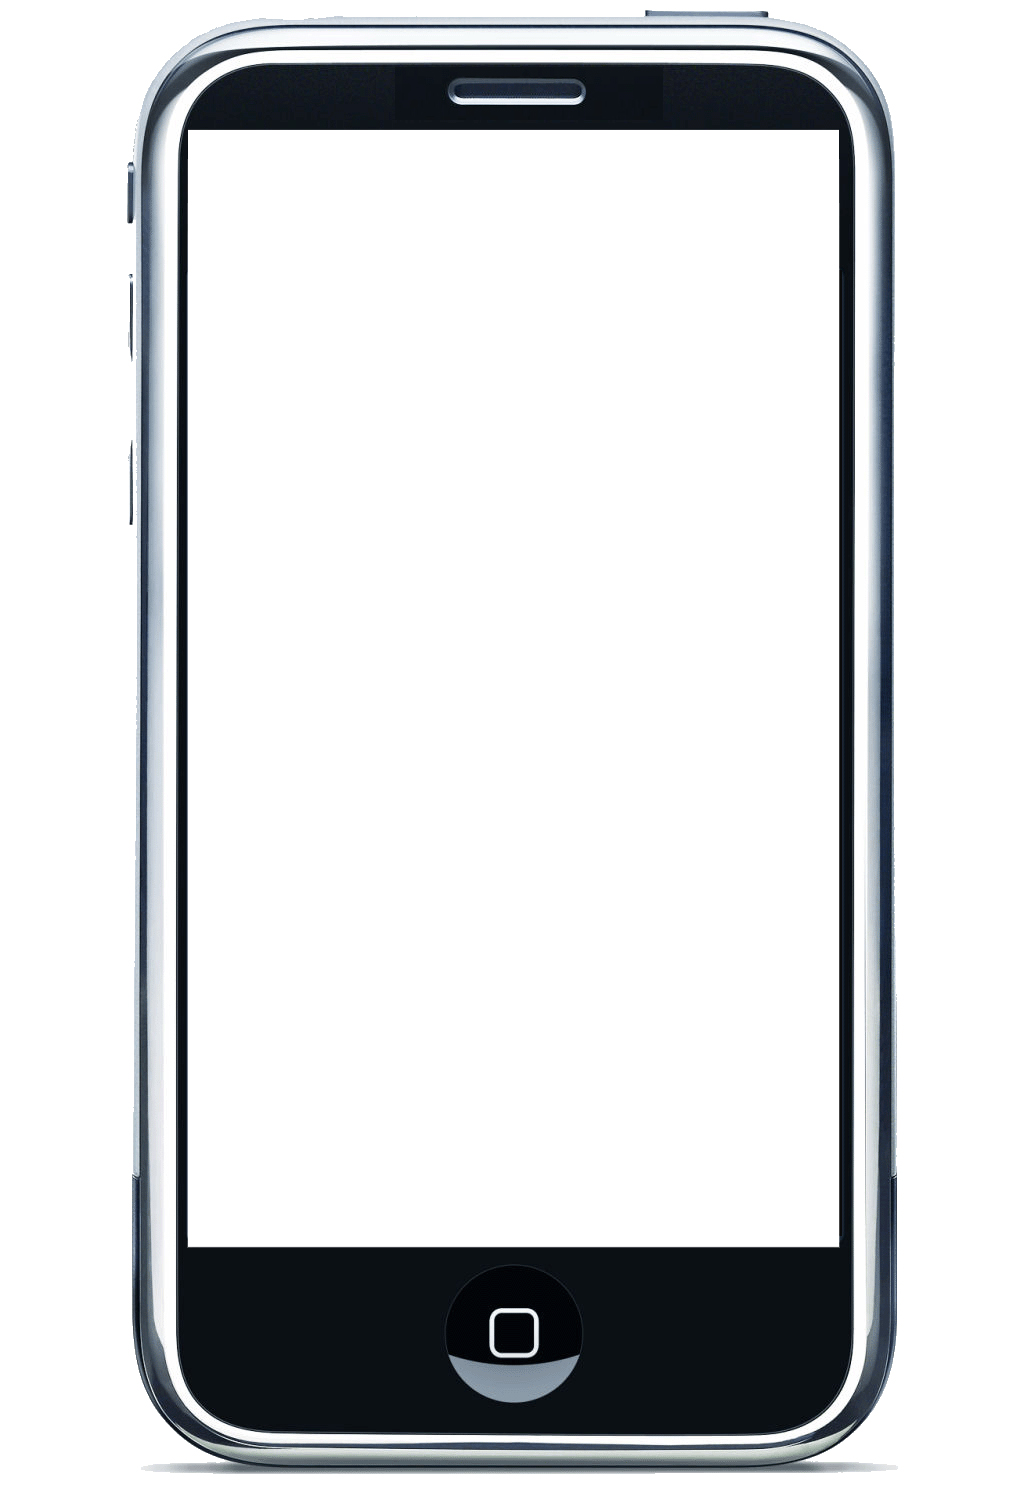 Iphone image clipart banner library library Free Iphone Cliparts, Download Free Clip Art, Free Clip Art on ... banner library library